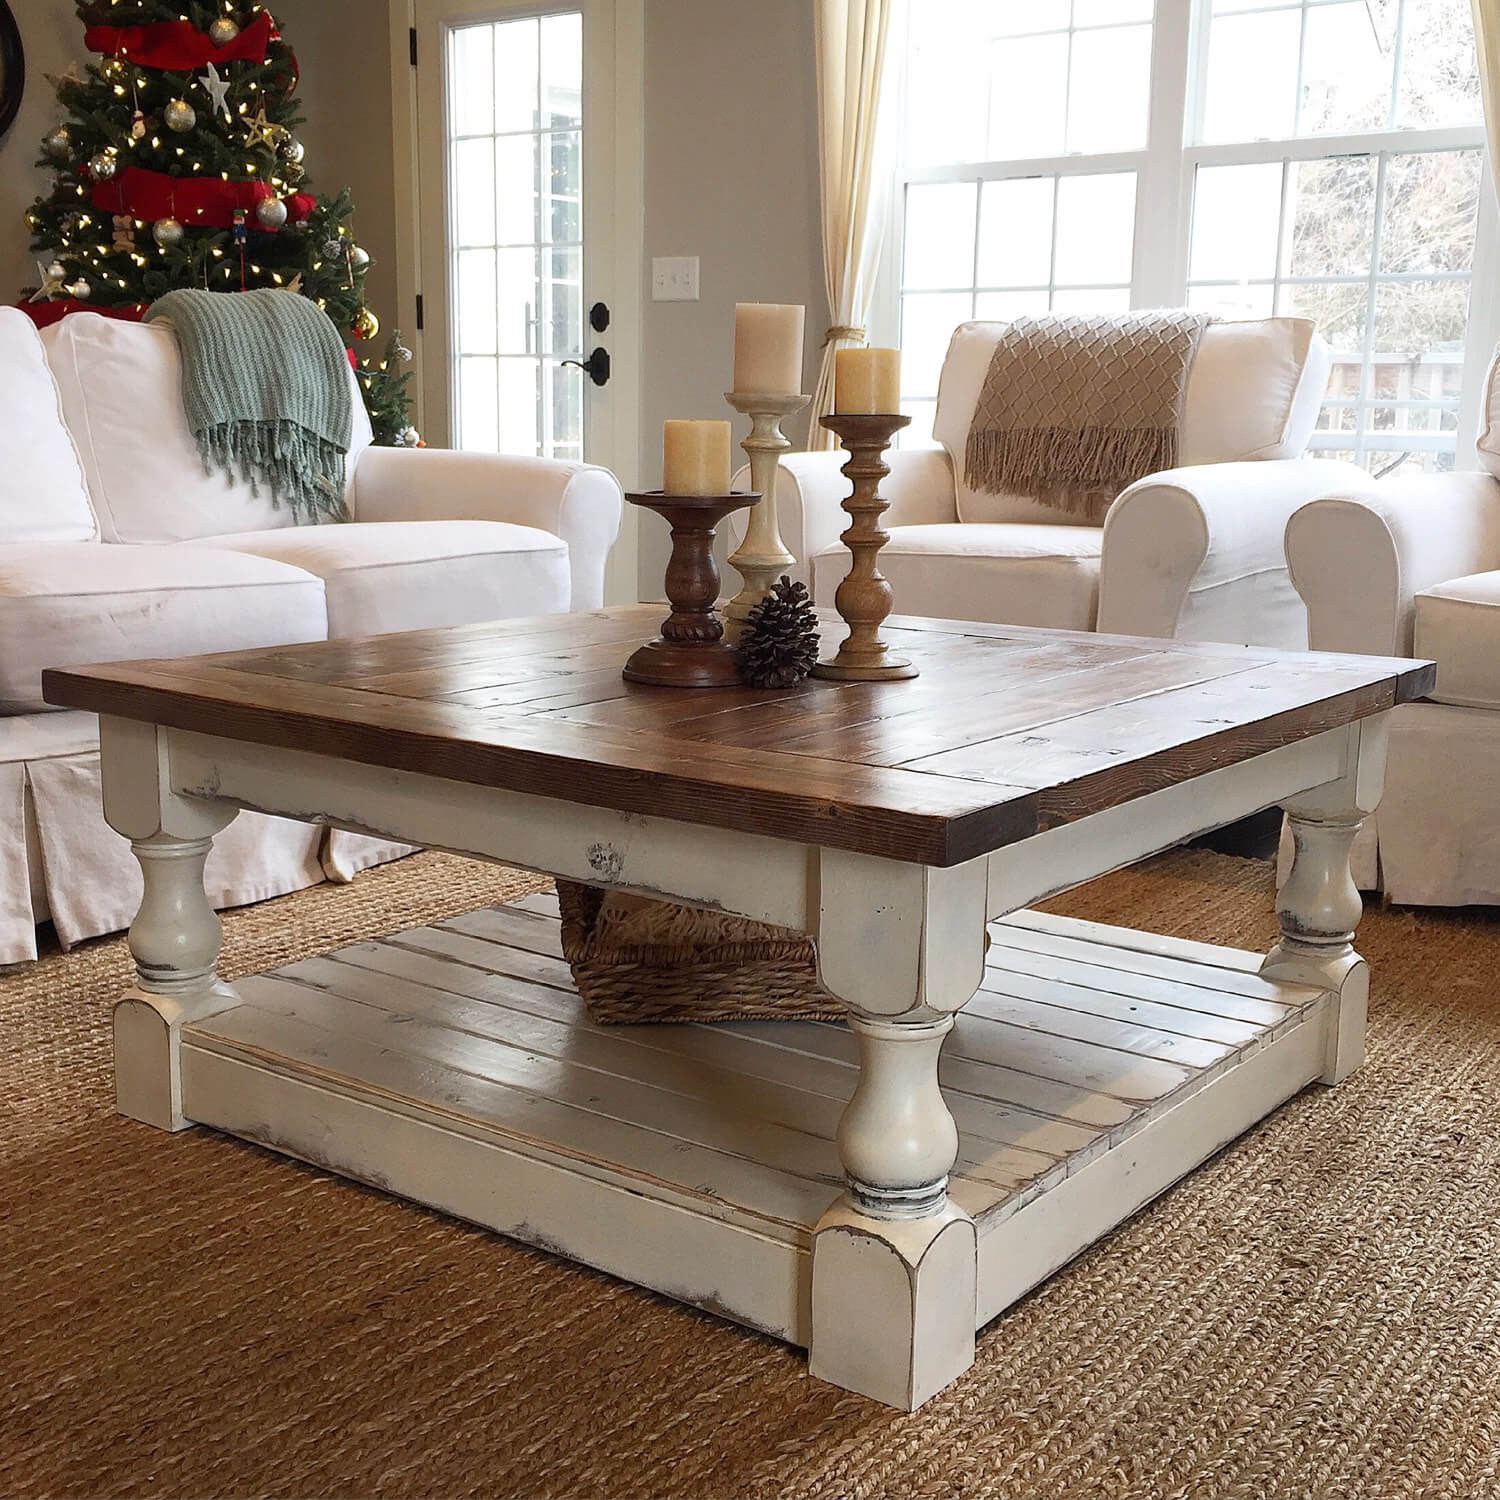 best coffee table decorating ideas and designs for homebnc accents elegant solid wood topped with turned candlesticks target armchair dining set antique victorian marble top end